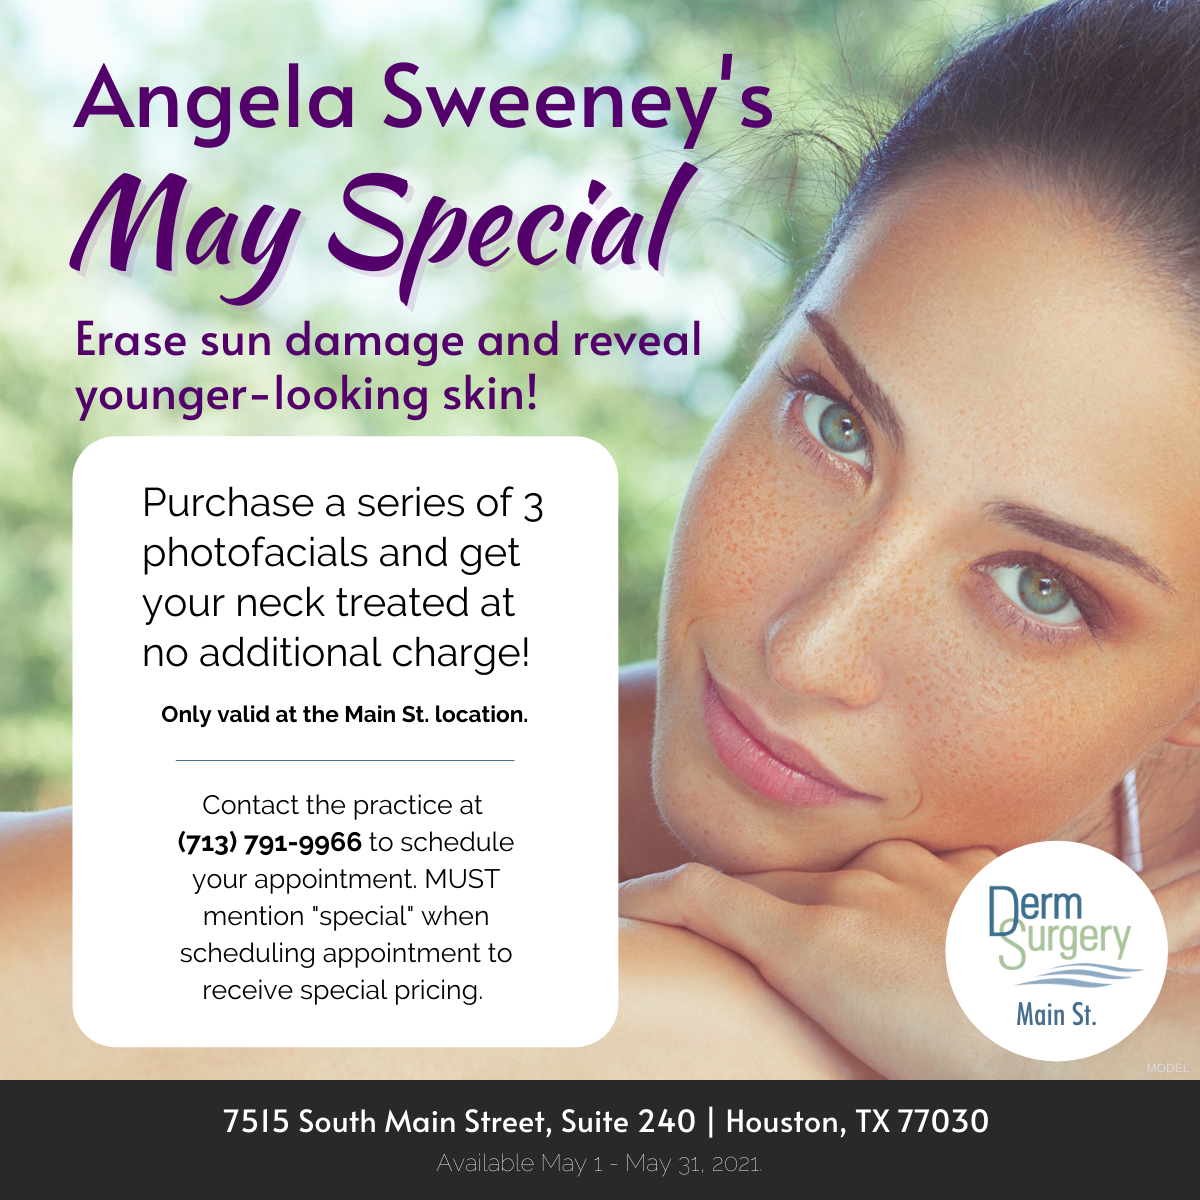 Angela Sweeney's May Special